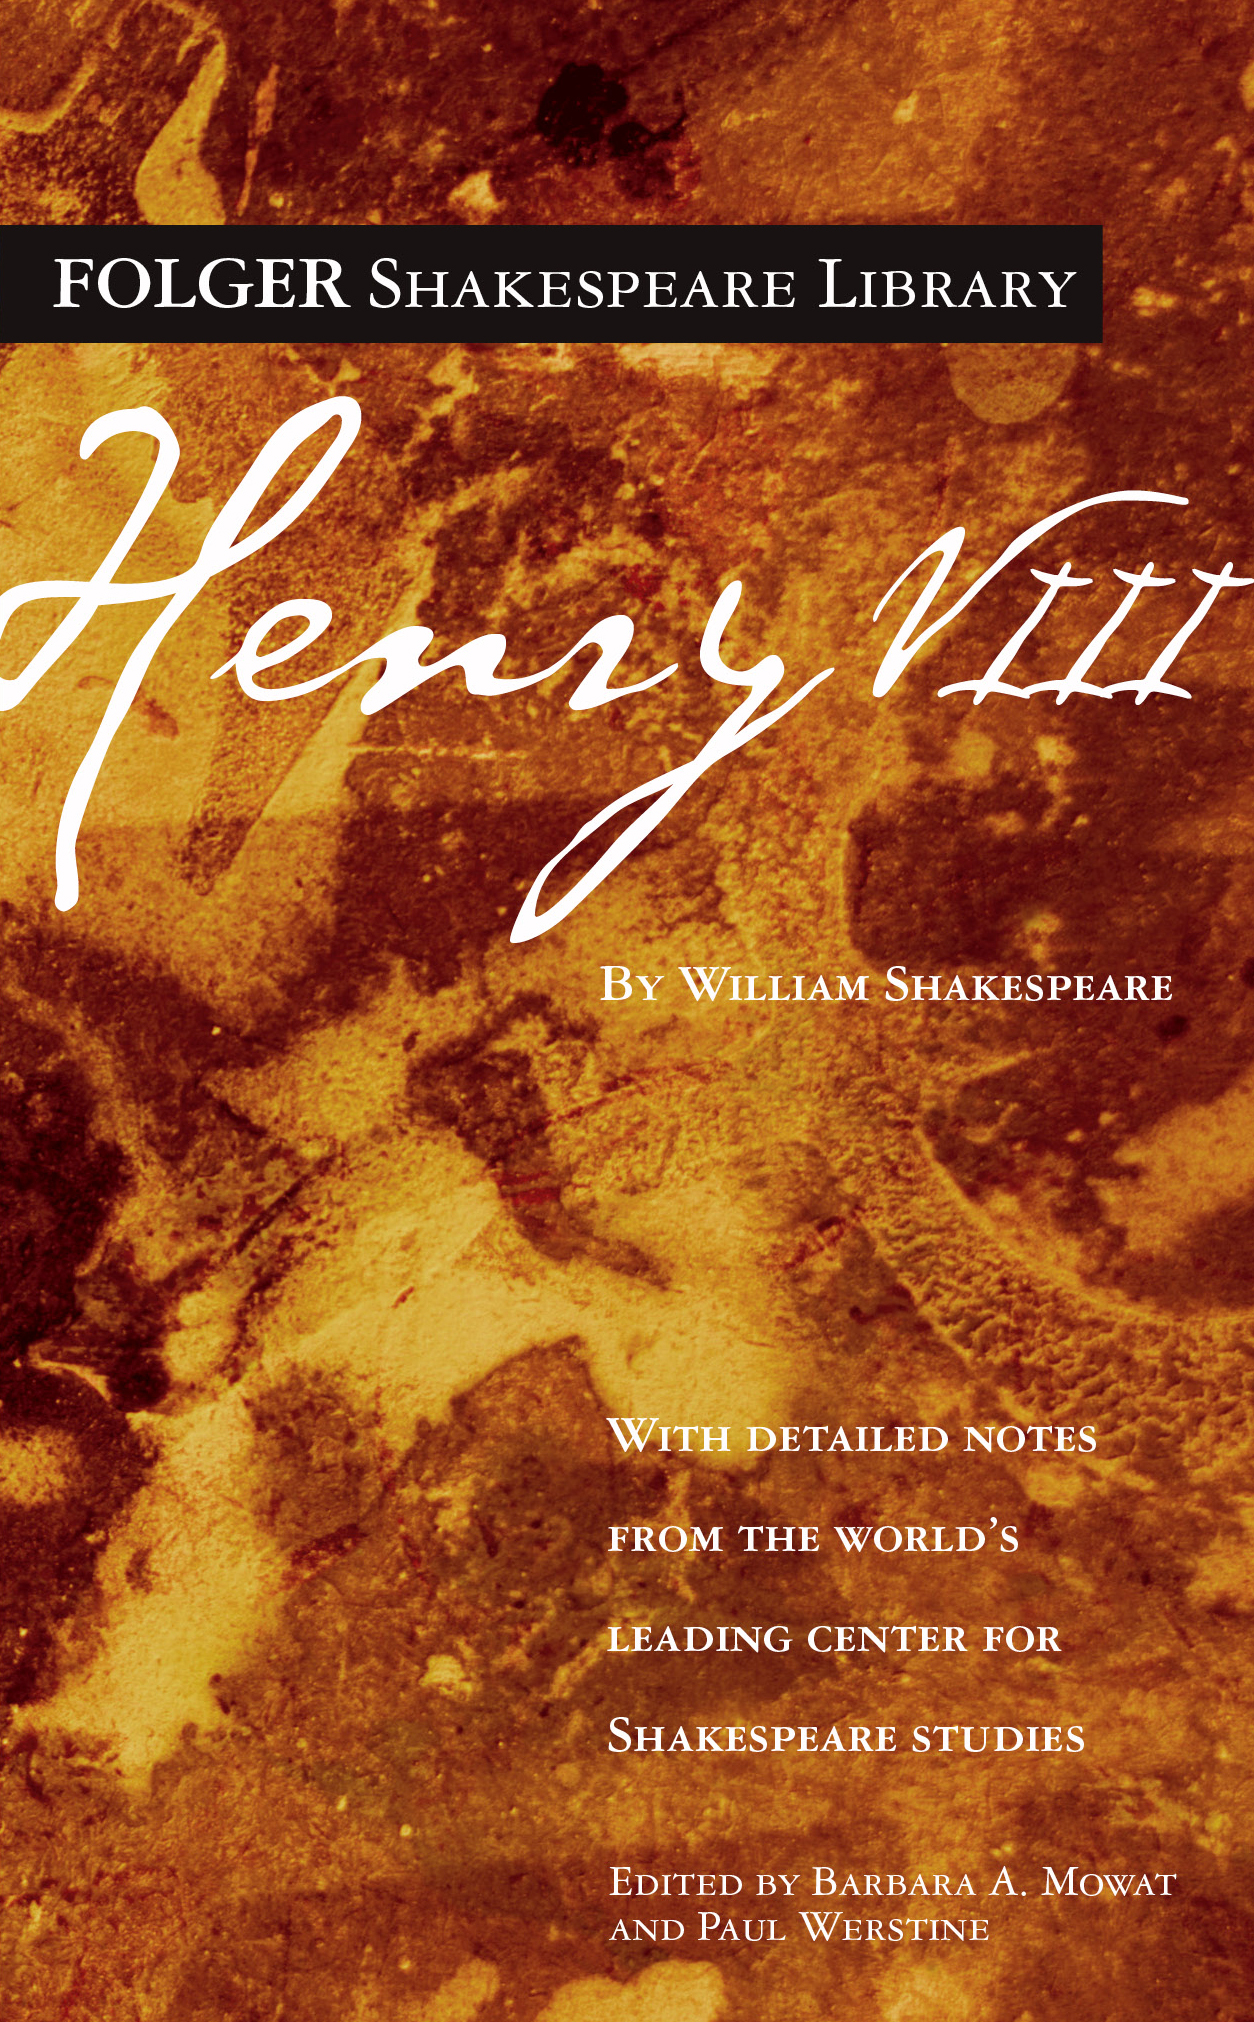 henry viii book by william shakespeare dr barbara a mowat cvr9780743273305 9780743273305 hr henry viii